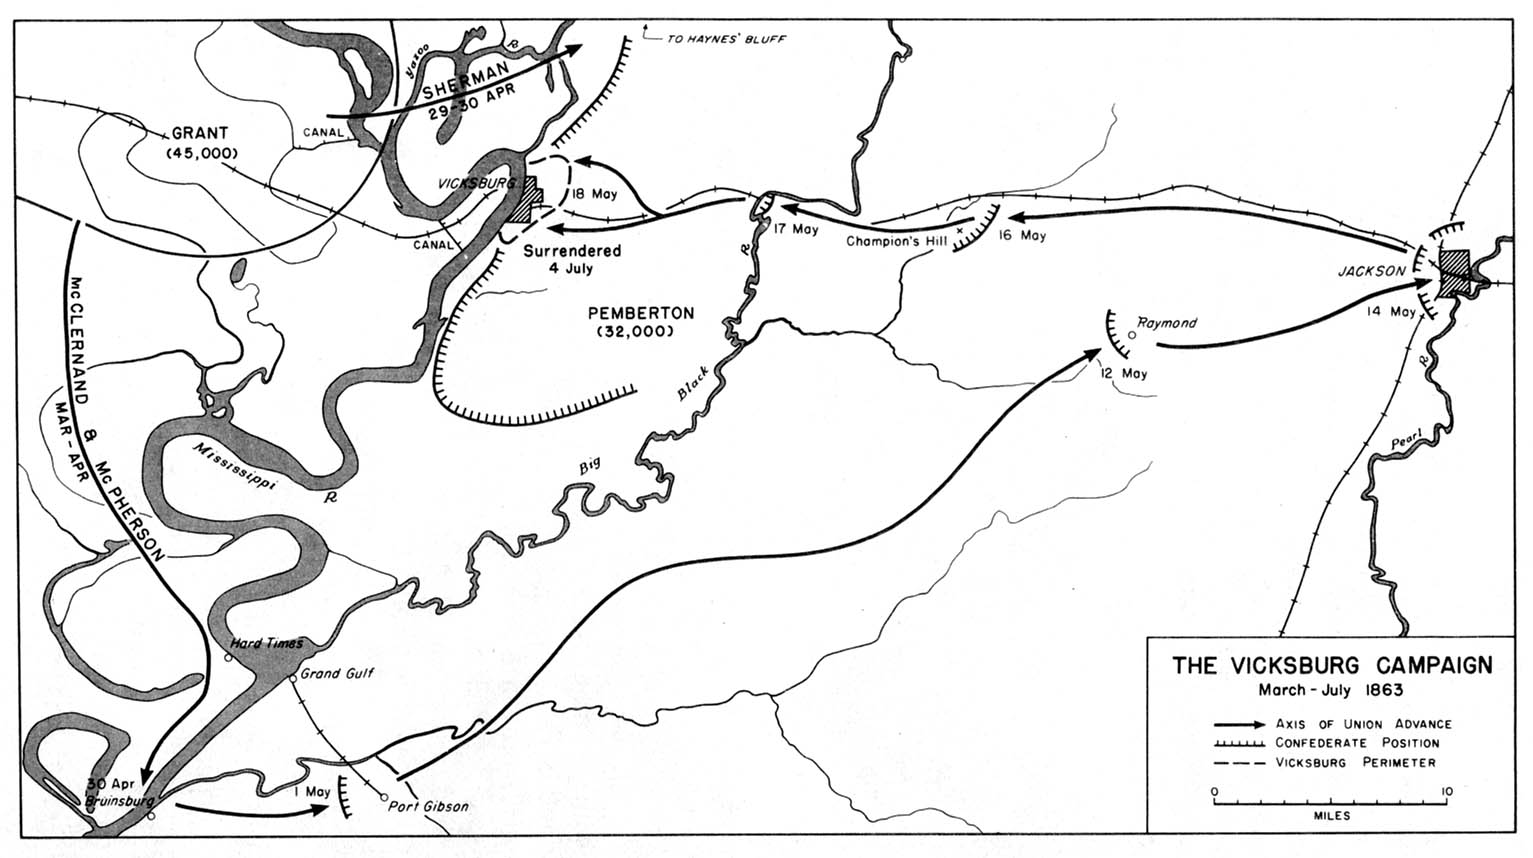 the battle of vicksburg essay Thesis statement: the battle of vicksburg was a very significant of the civil war - battle of vicksburg outline introduction the city was considered an essential asset for the union to regain control of the mississippi river and in all reality split the confederacy in two.